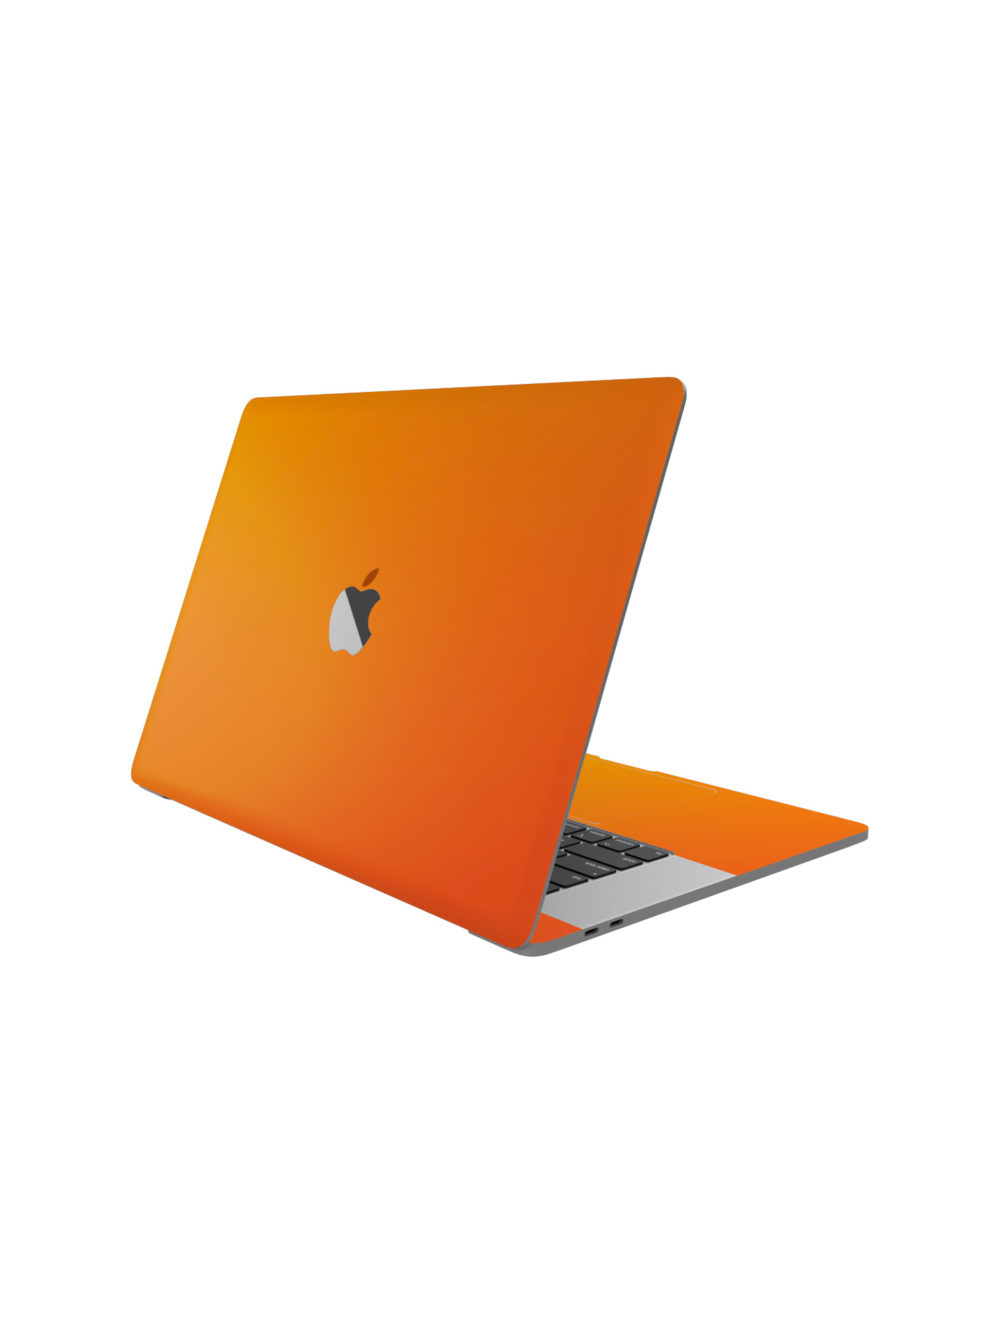 Matt Orange Skin for Macbook Pro M1